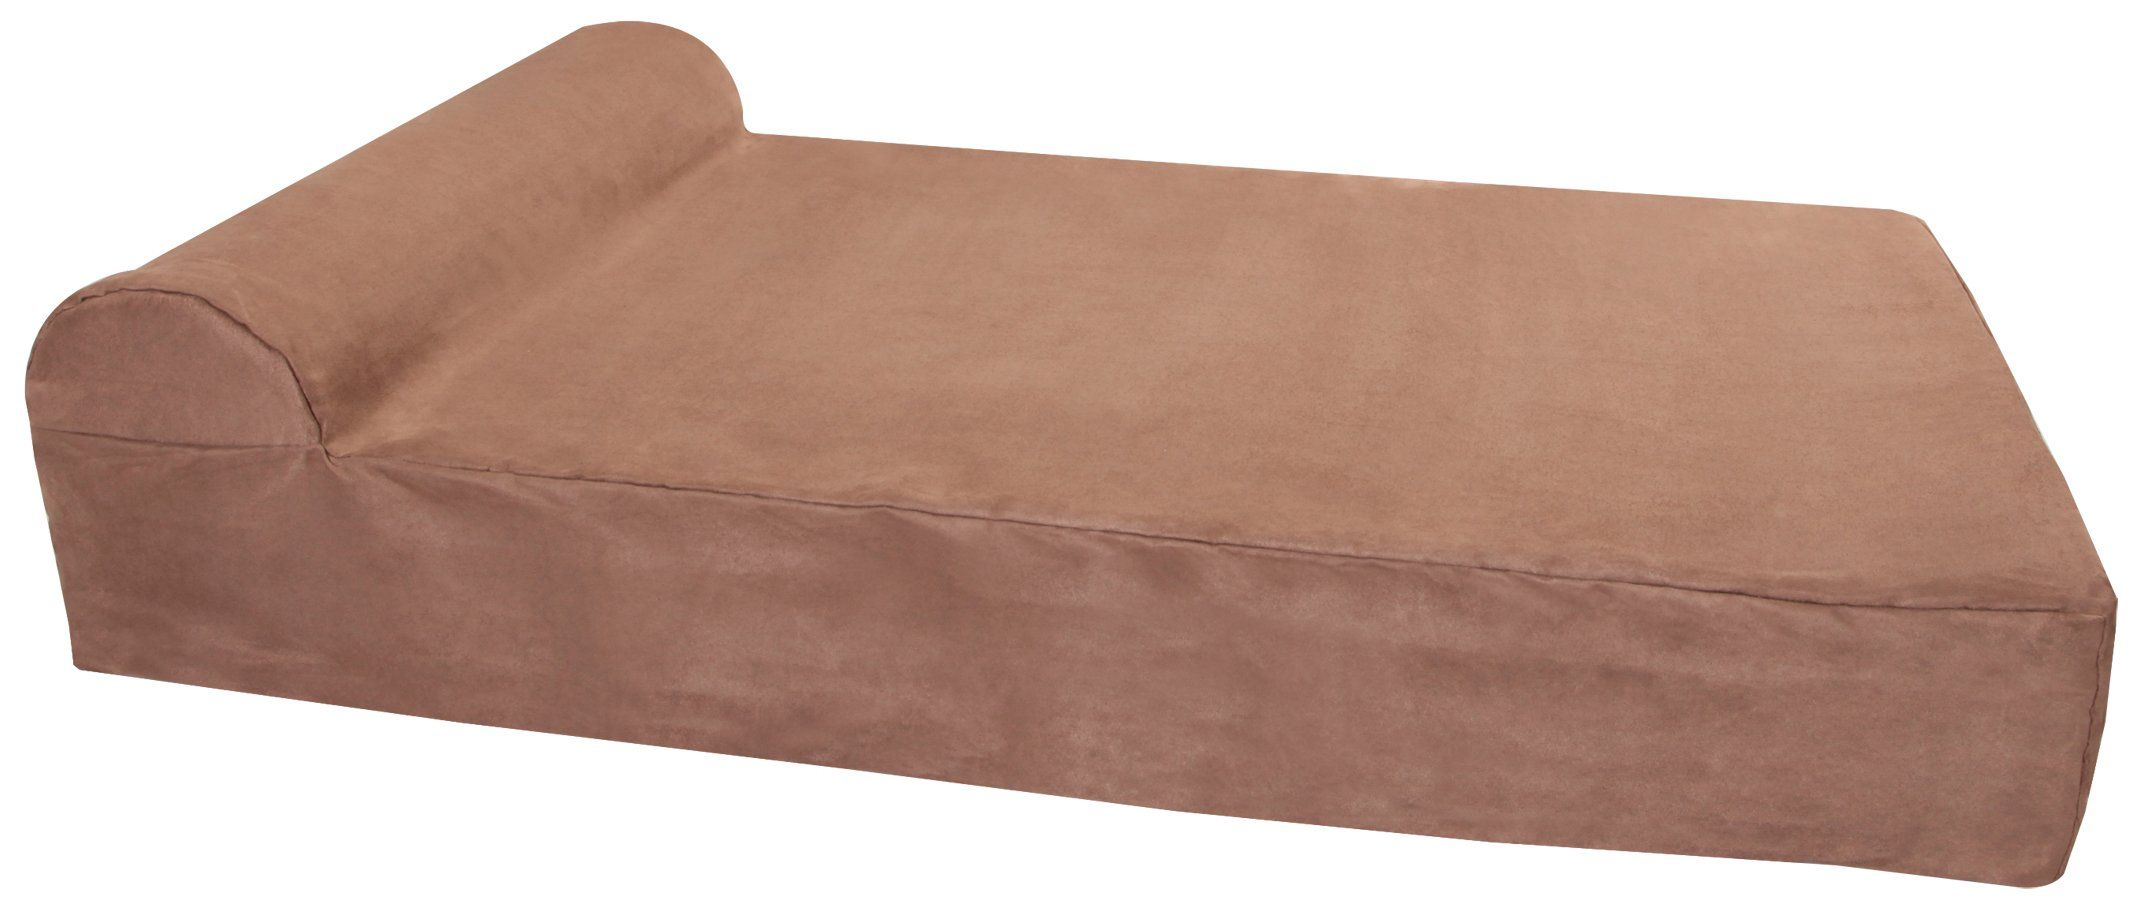 Big Barker 7 Orthopedic Dog Bed with PillowTop Headrest